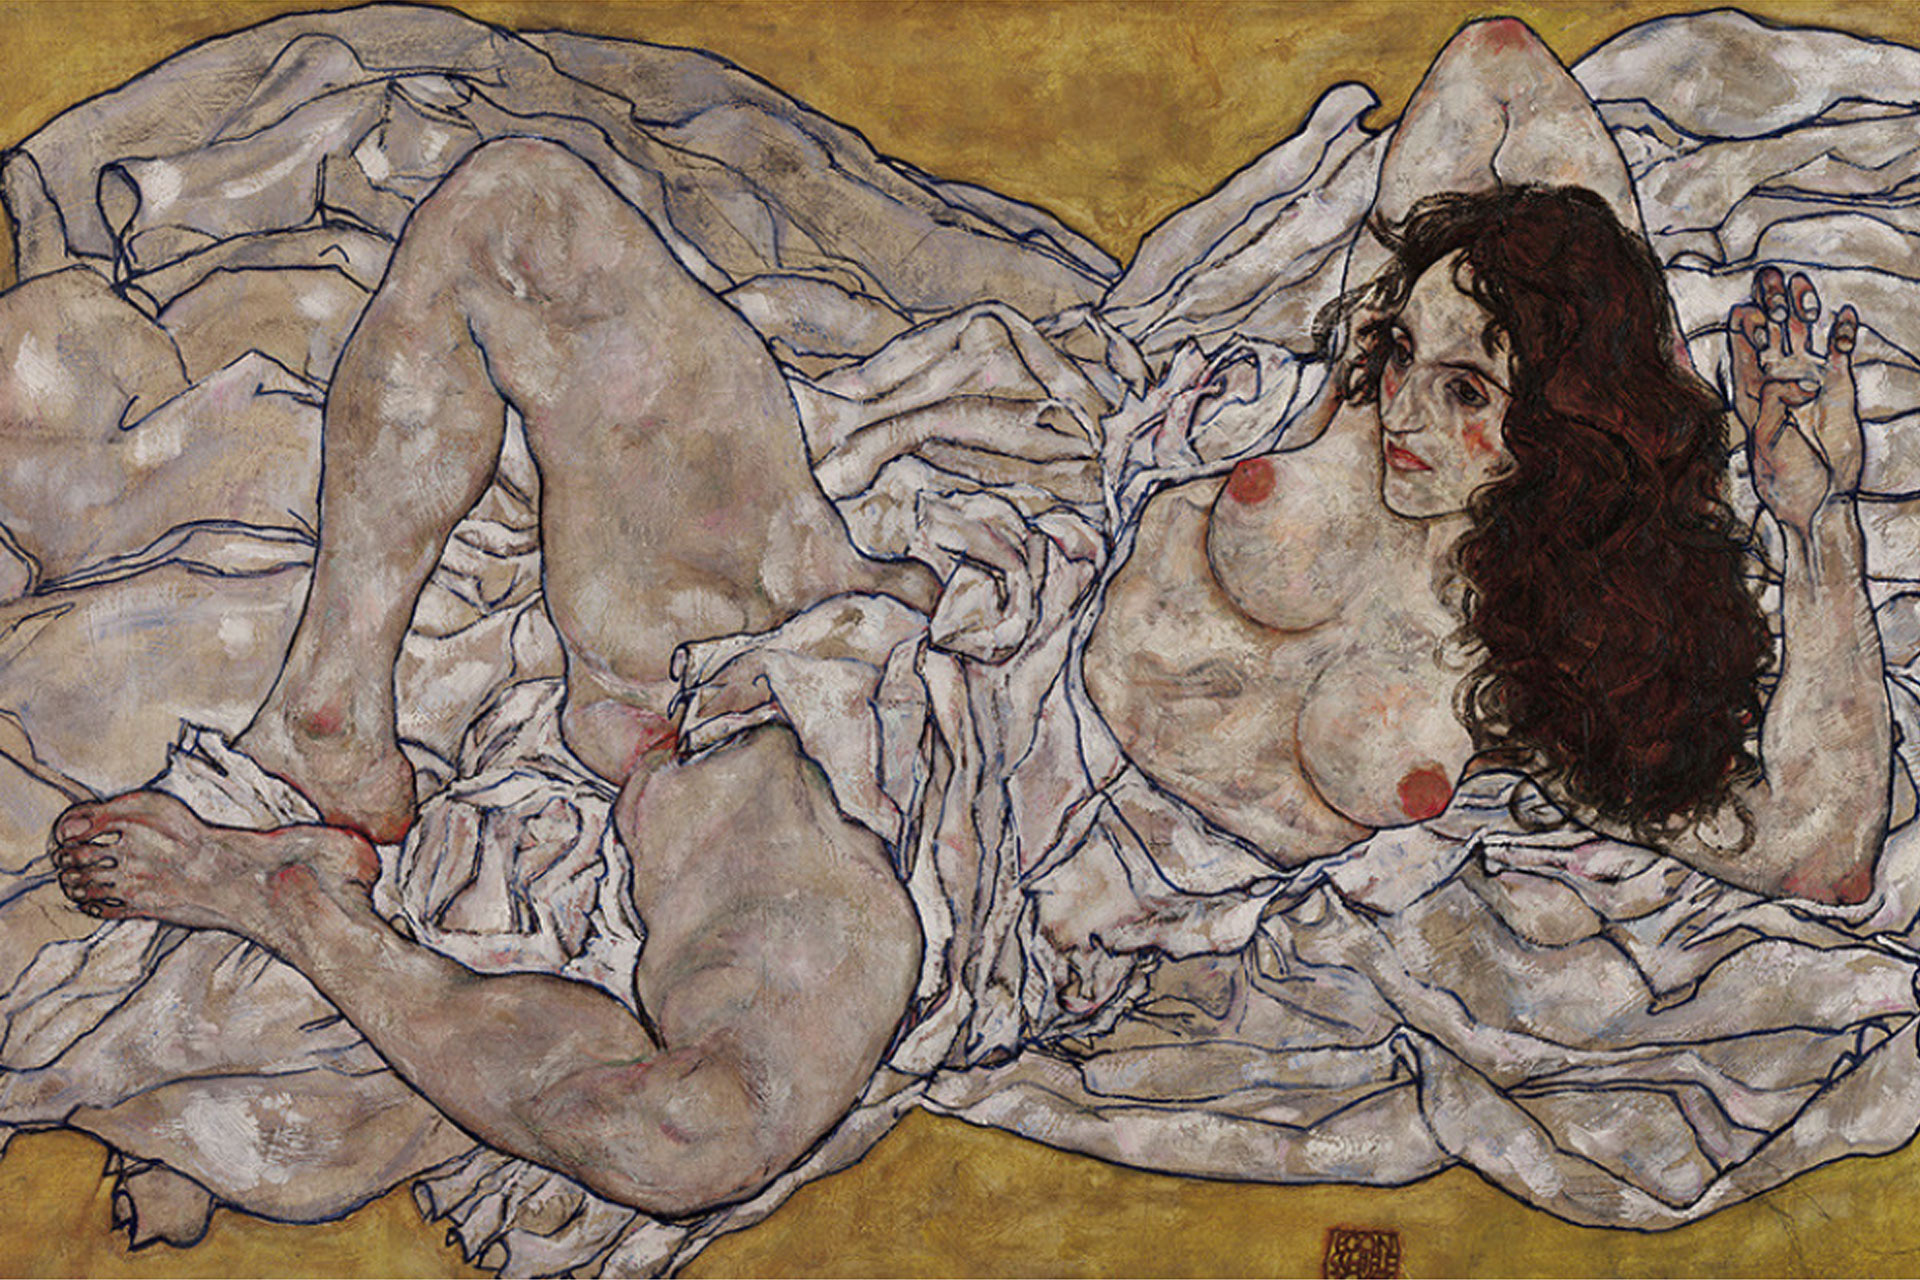 the radical nude Egon Schiele